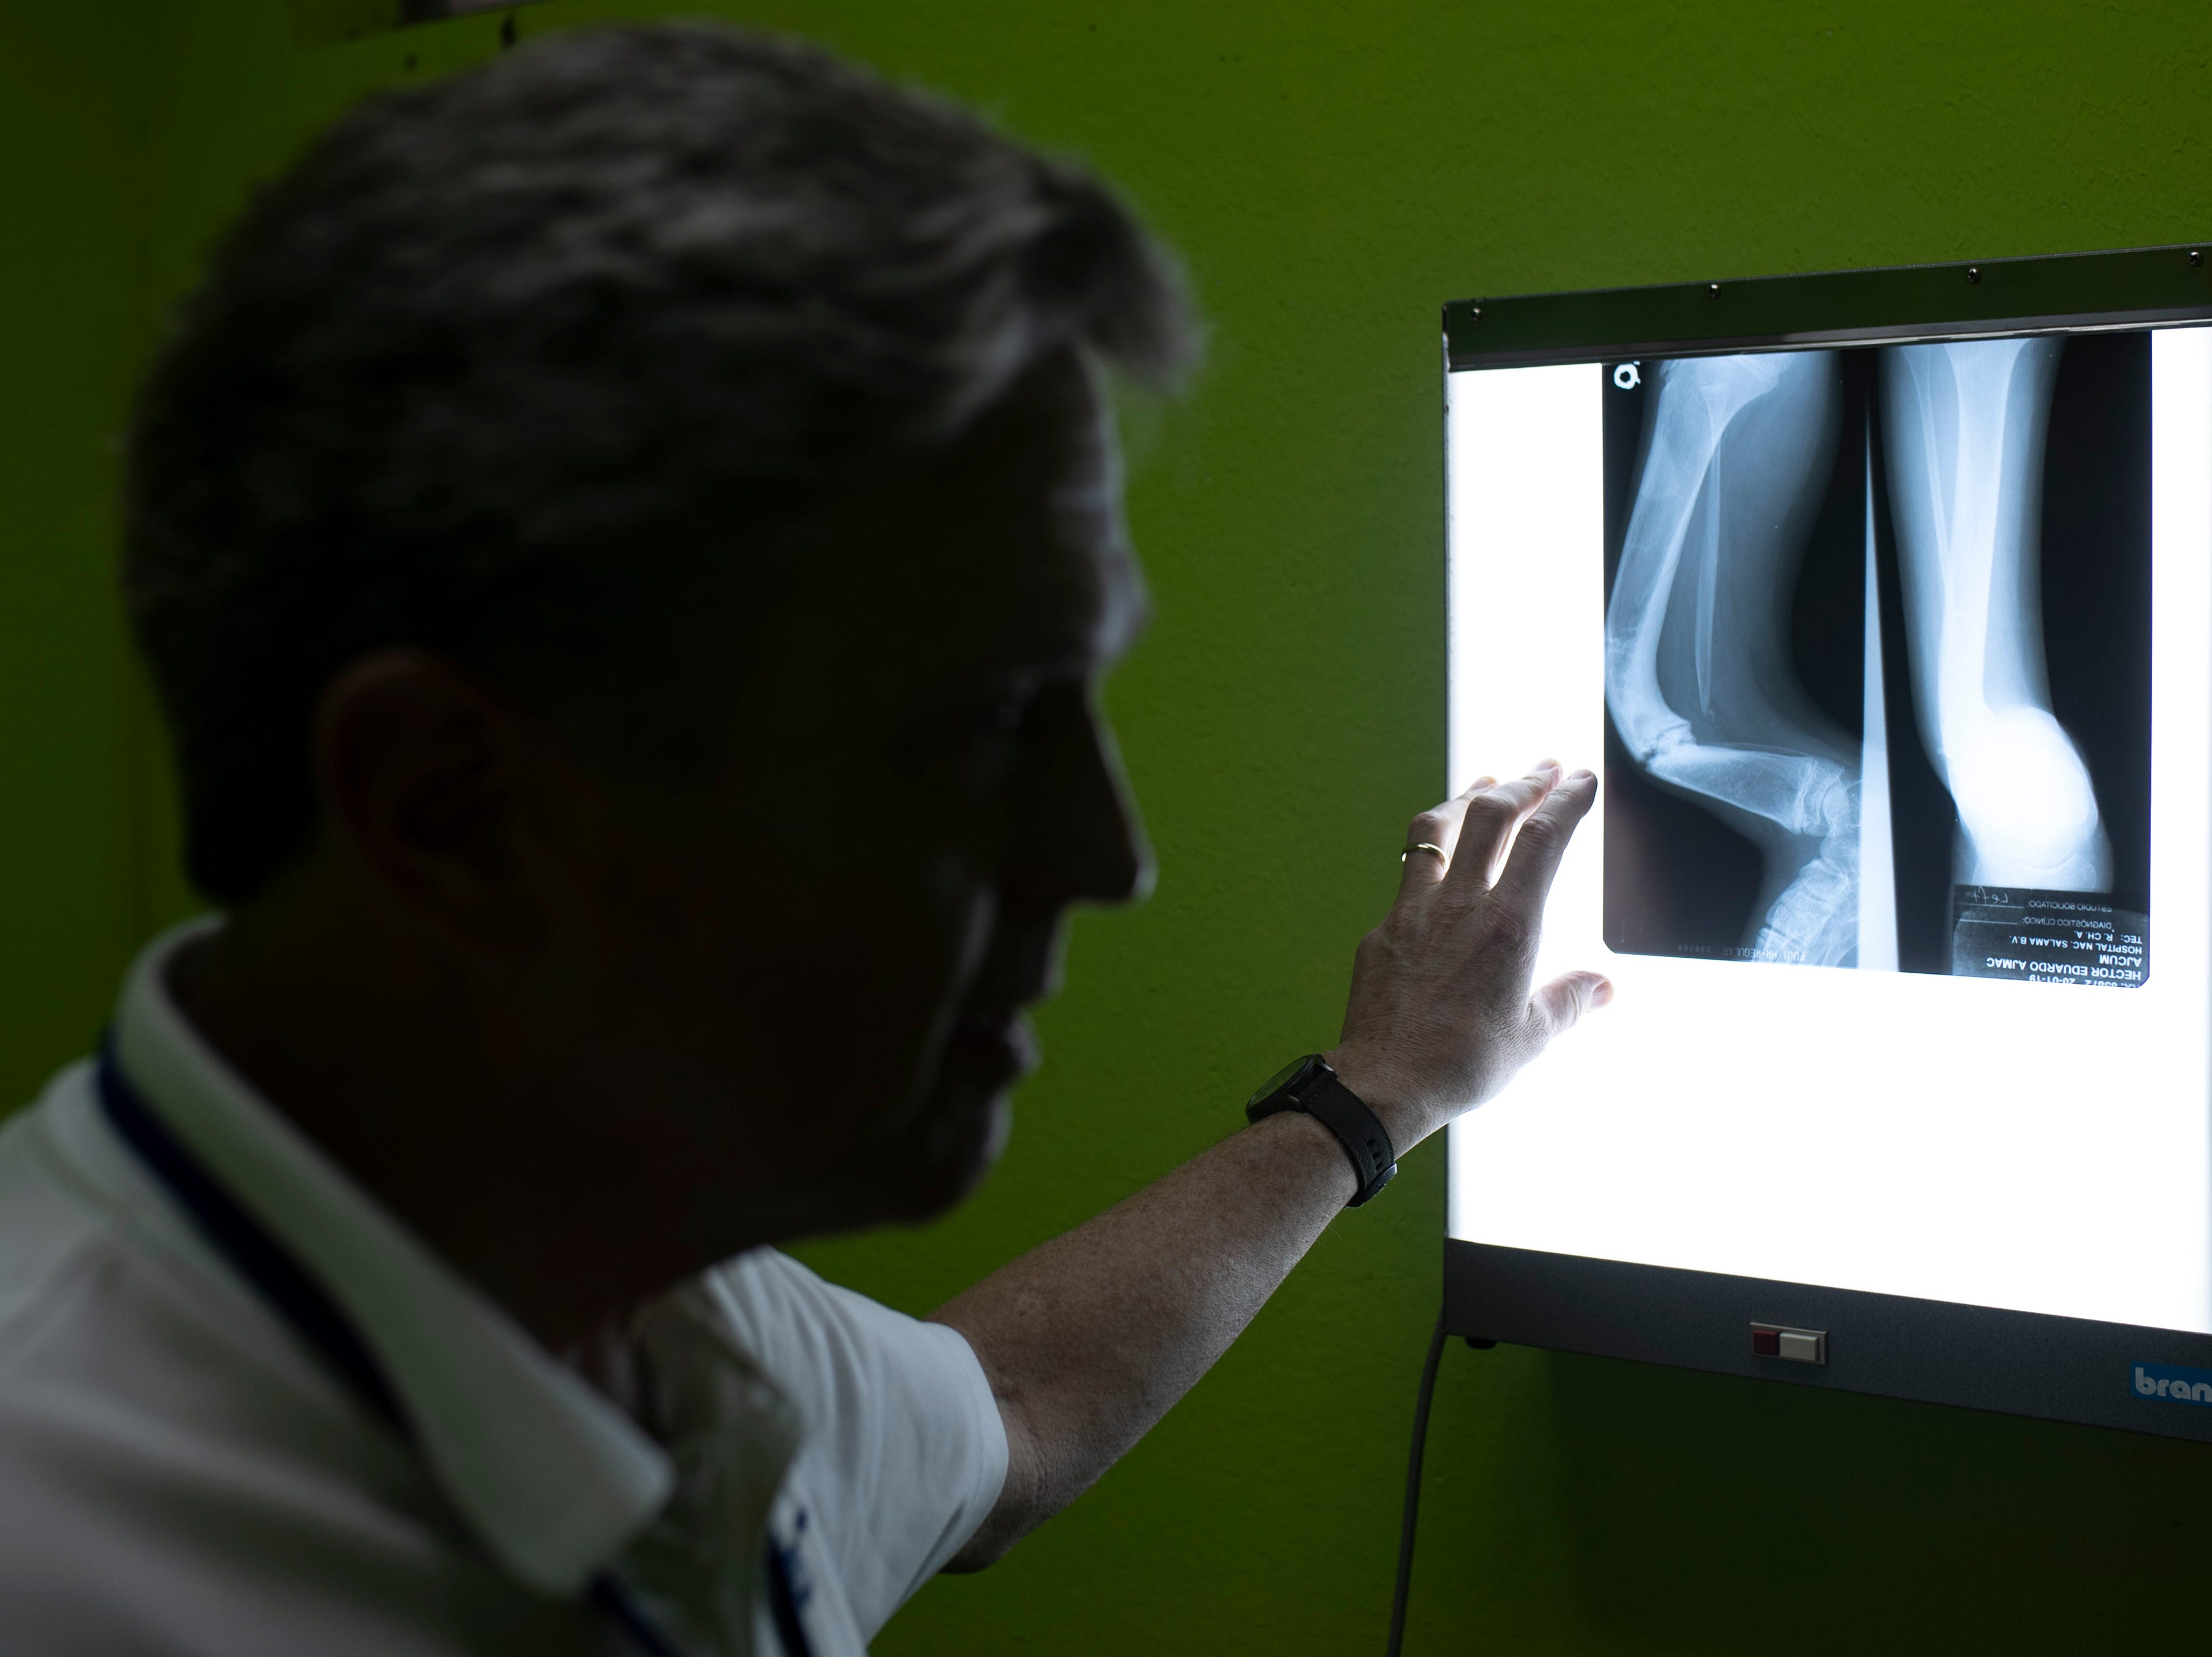 Orthopedic surgeon Dr. George Quill looks over the x-rays and checks up on the progress of patient Manuela Heidi Ijom Rivera whom he operated on the previous year. Jan. 20, 2019